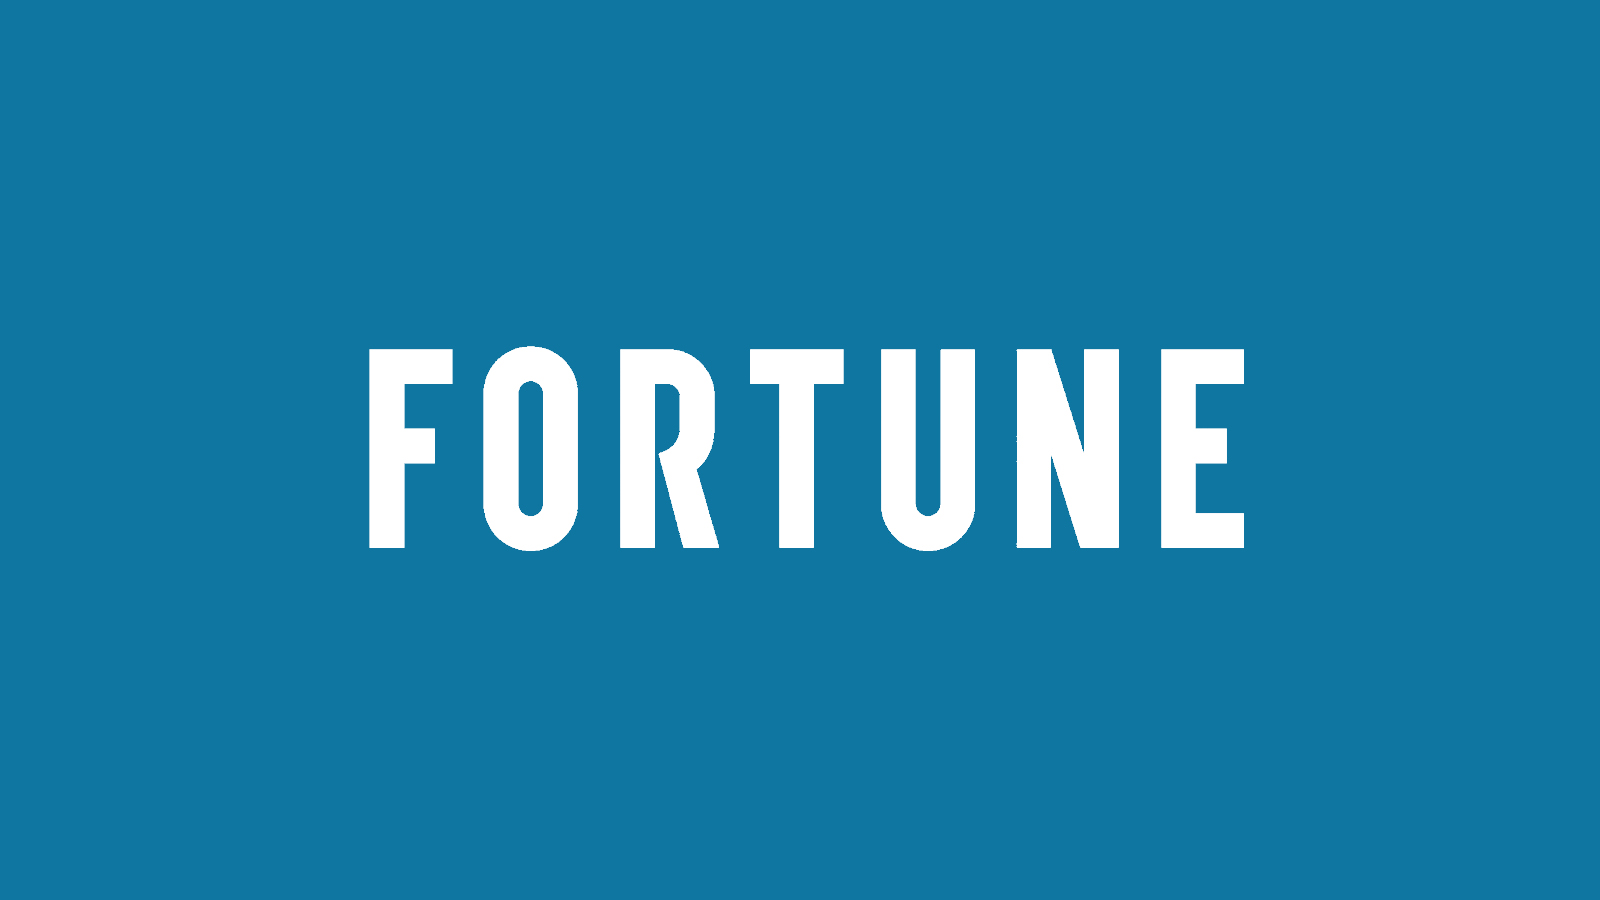 fortune logo icon (blue)